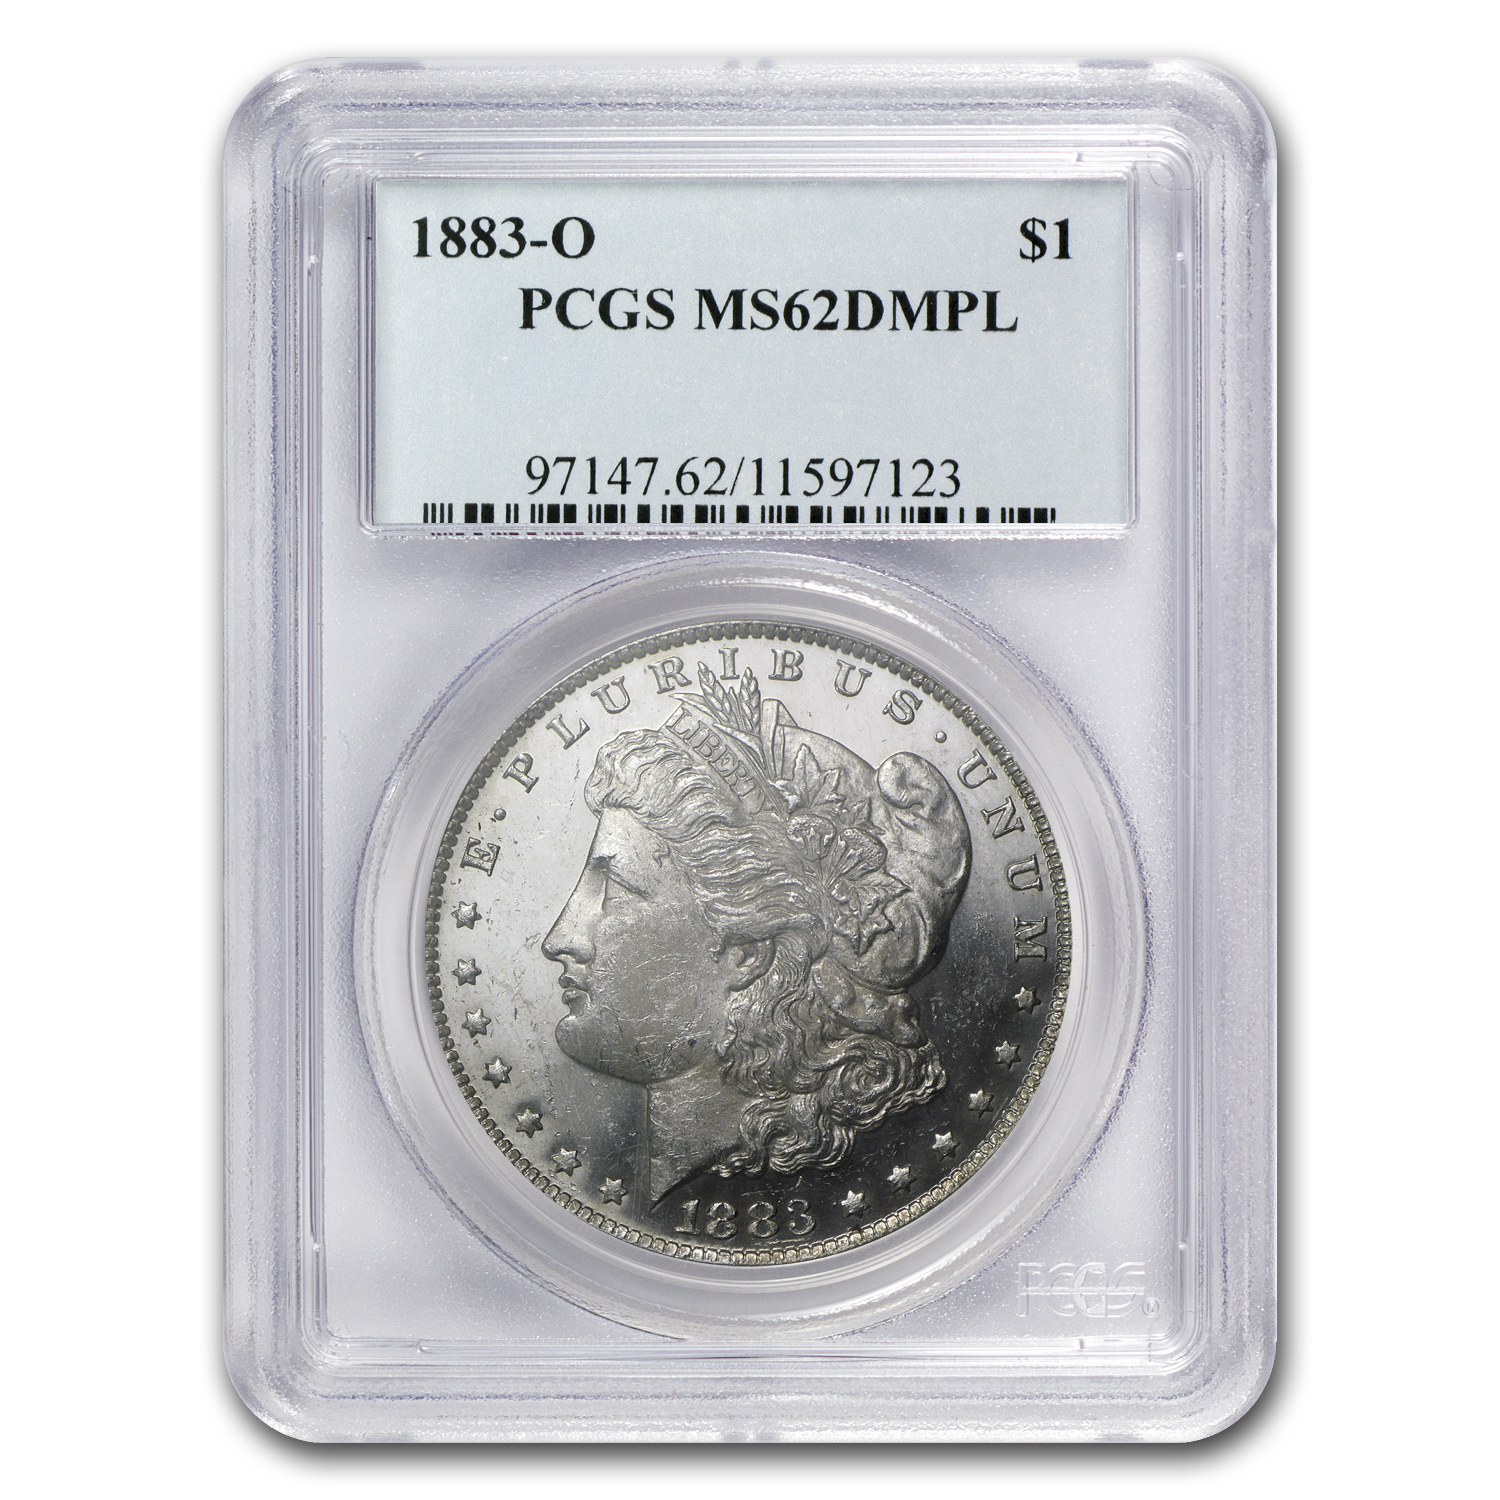 1883-O Morgan Dollar MS-62 DMPL PCGS